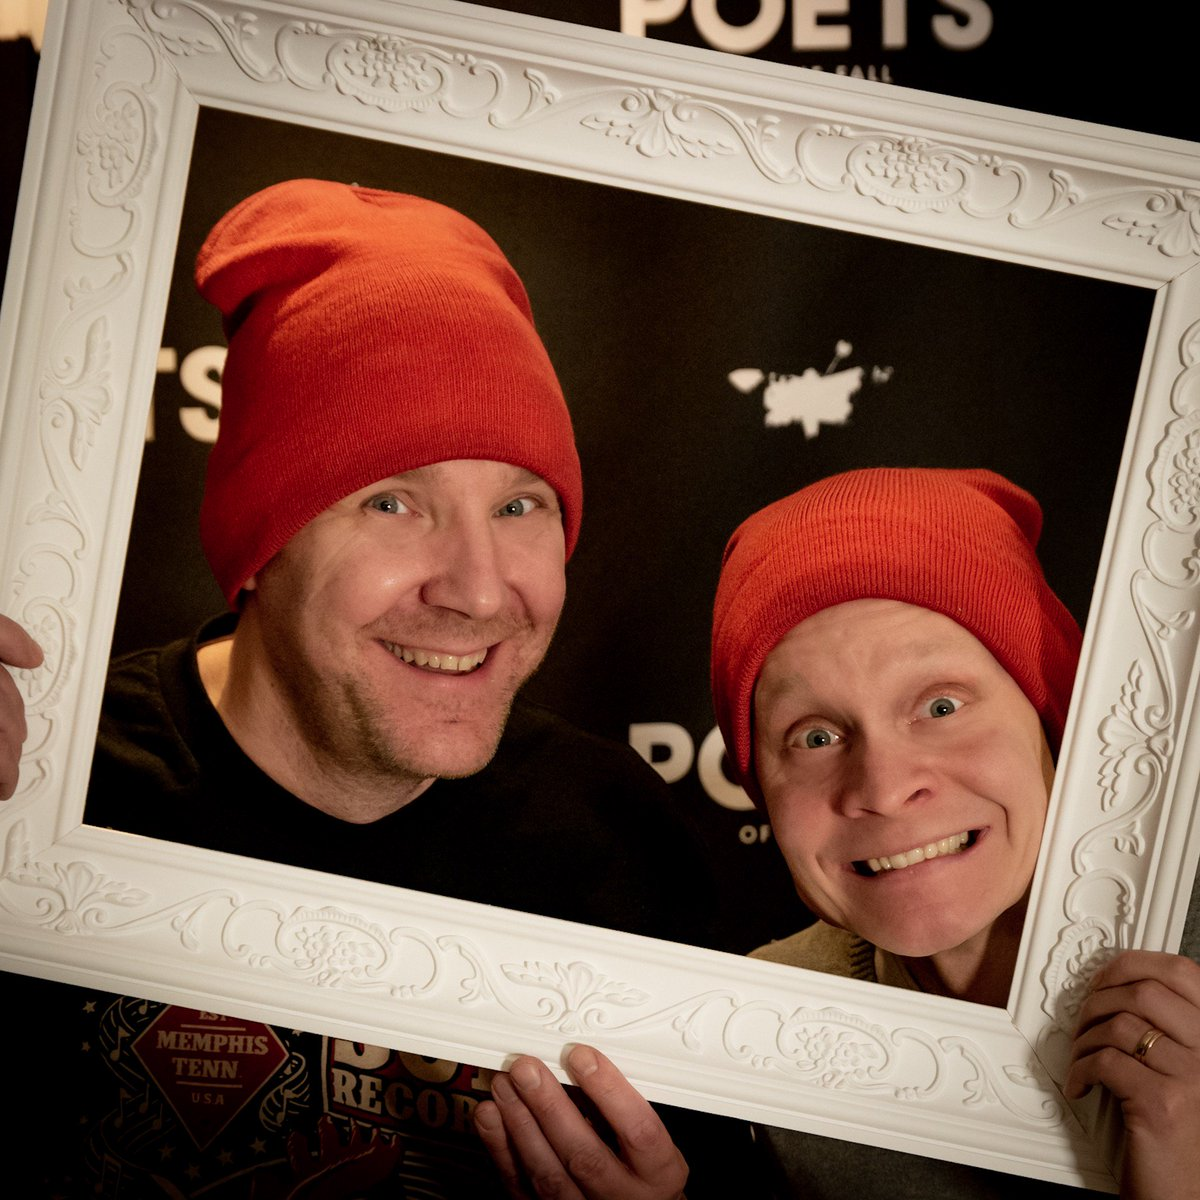 Merry Christmas and Happy Holidays everyone! 🎄We wish you happy times with your friends and family, no matter how you celebrate. We are also turning off the studio lights and taking a little break. Have a relaxing time and enjoy! 🎁❤️ #markopoets #ollipoets #captainpoets